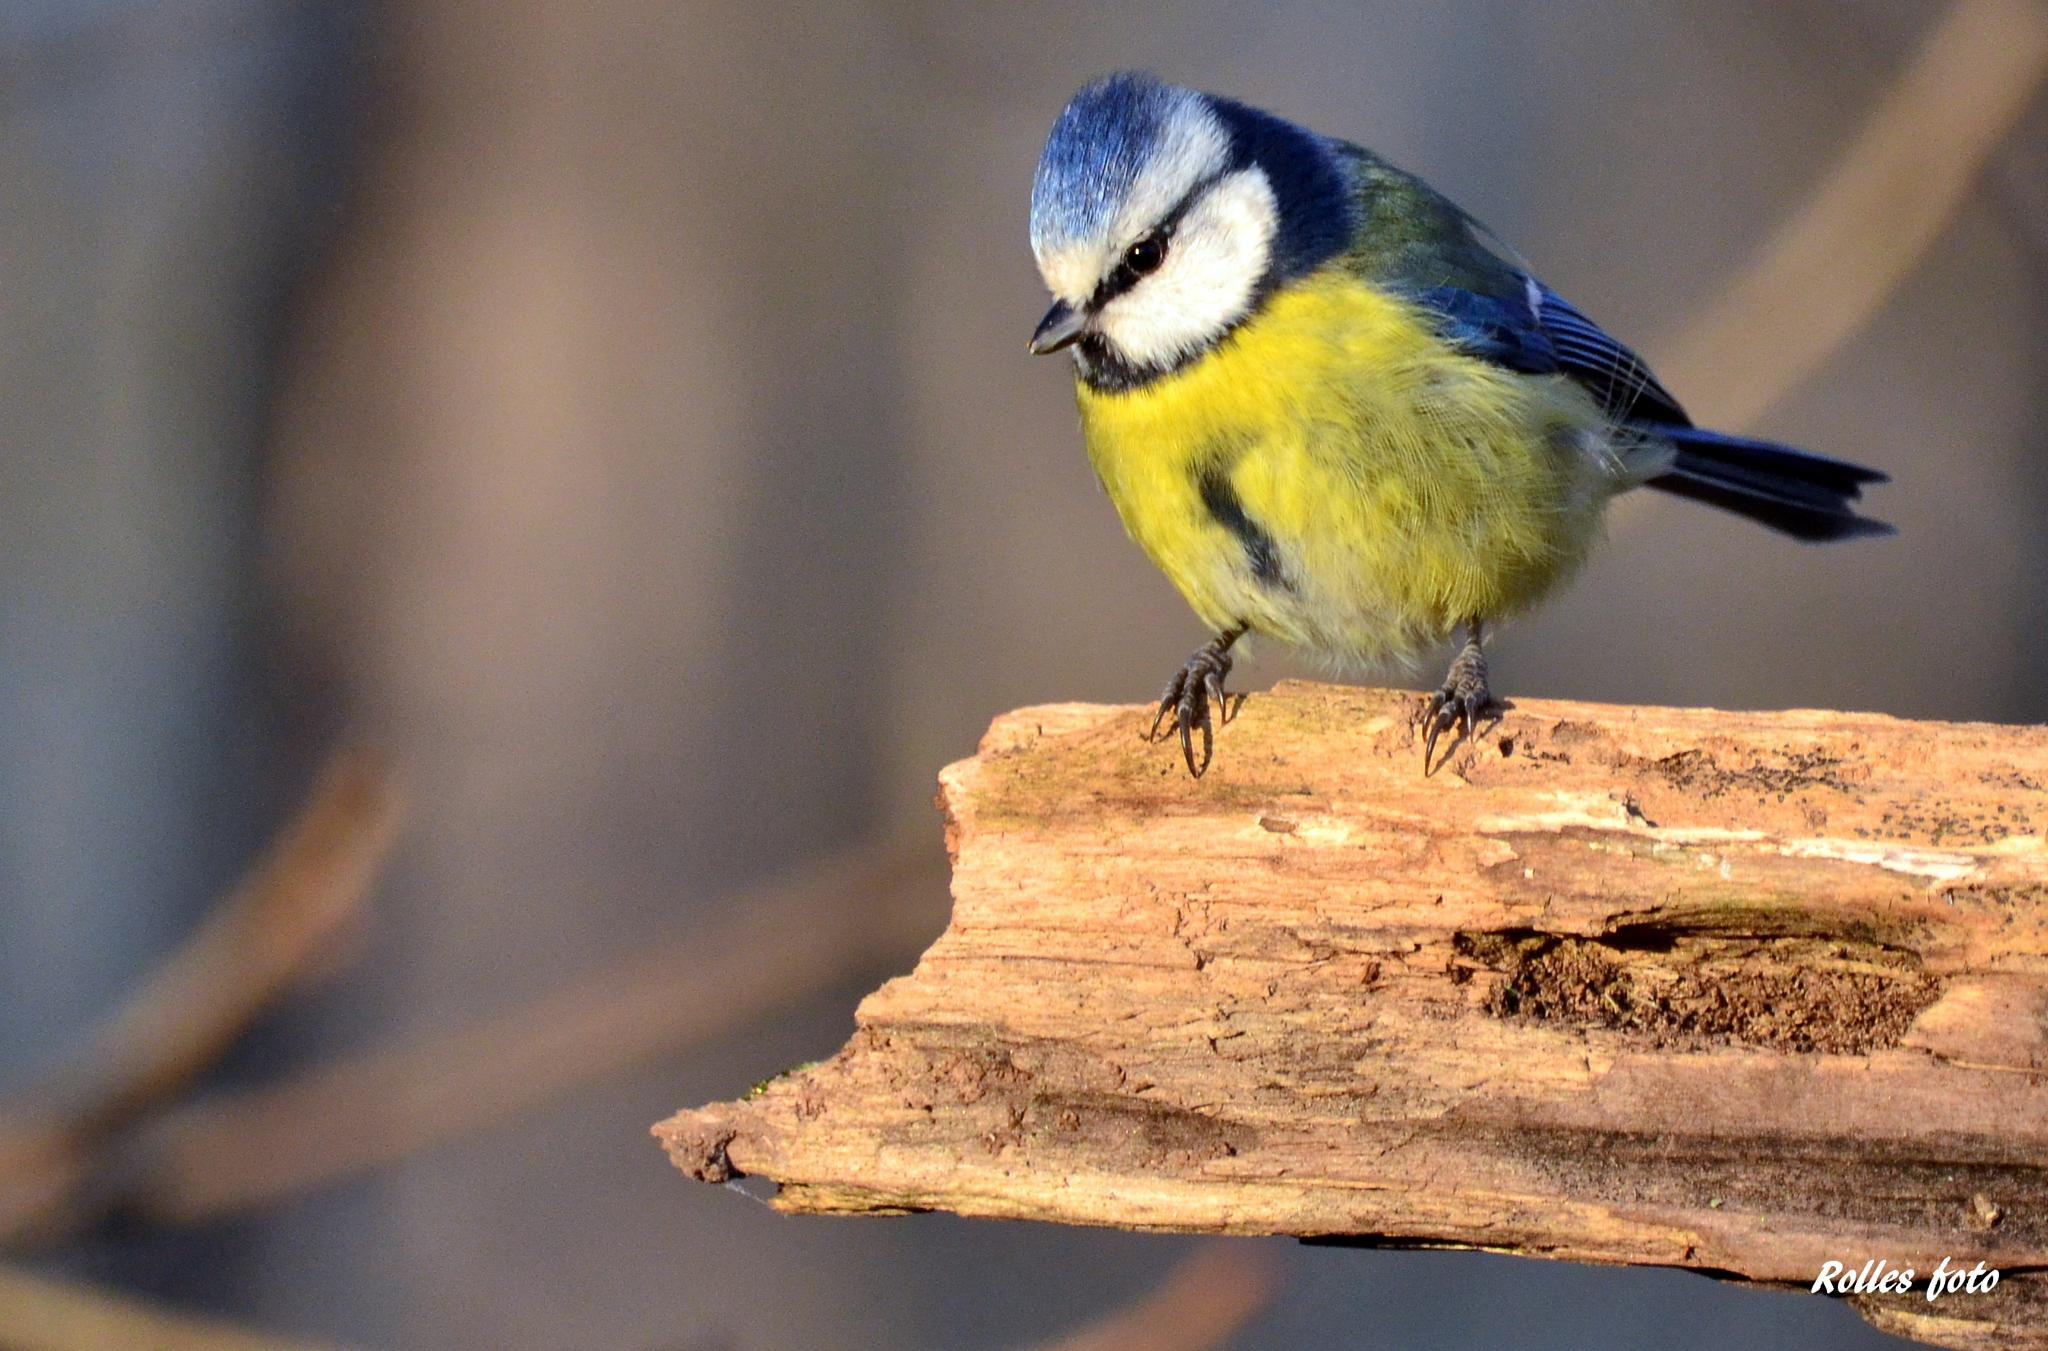 Bluetit by rollepersson